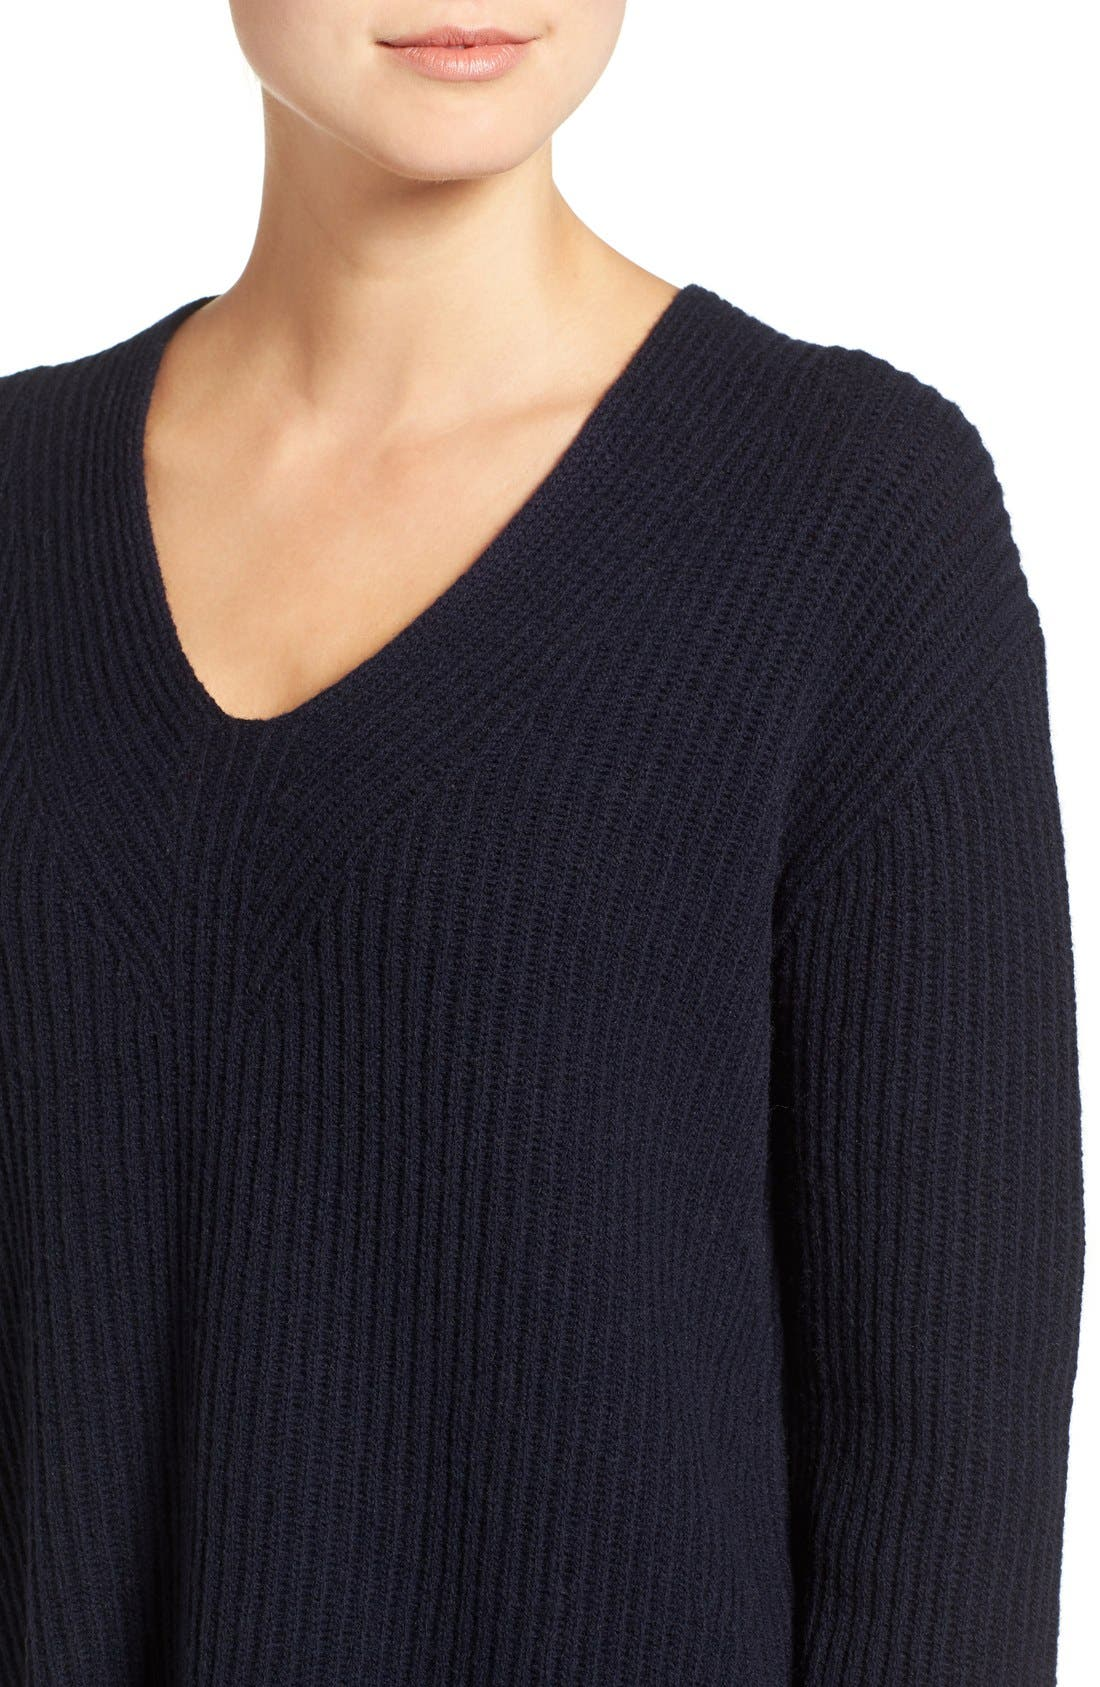 Woodside Pullover Sweater,                             Alternate thumbnail 14, color,